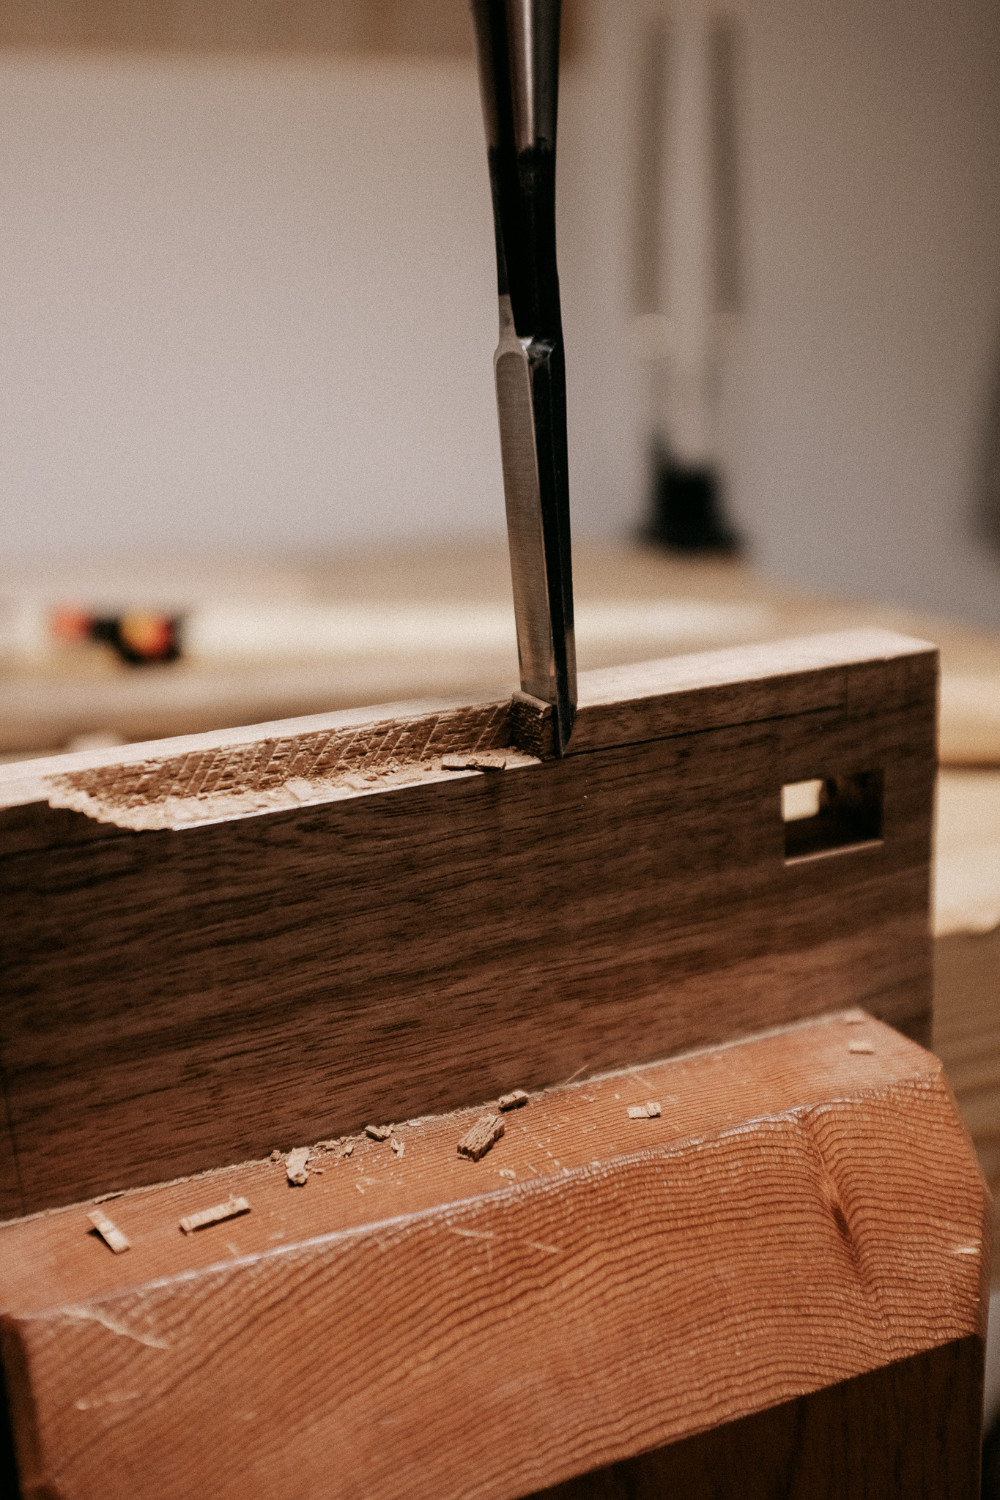 Hand cutting groove with chisel